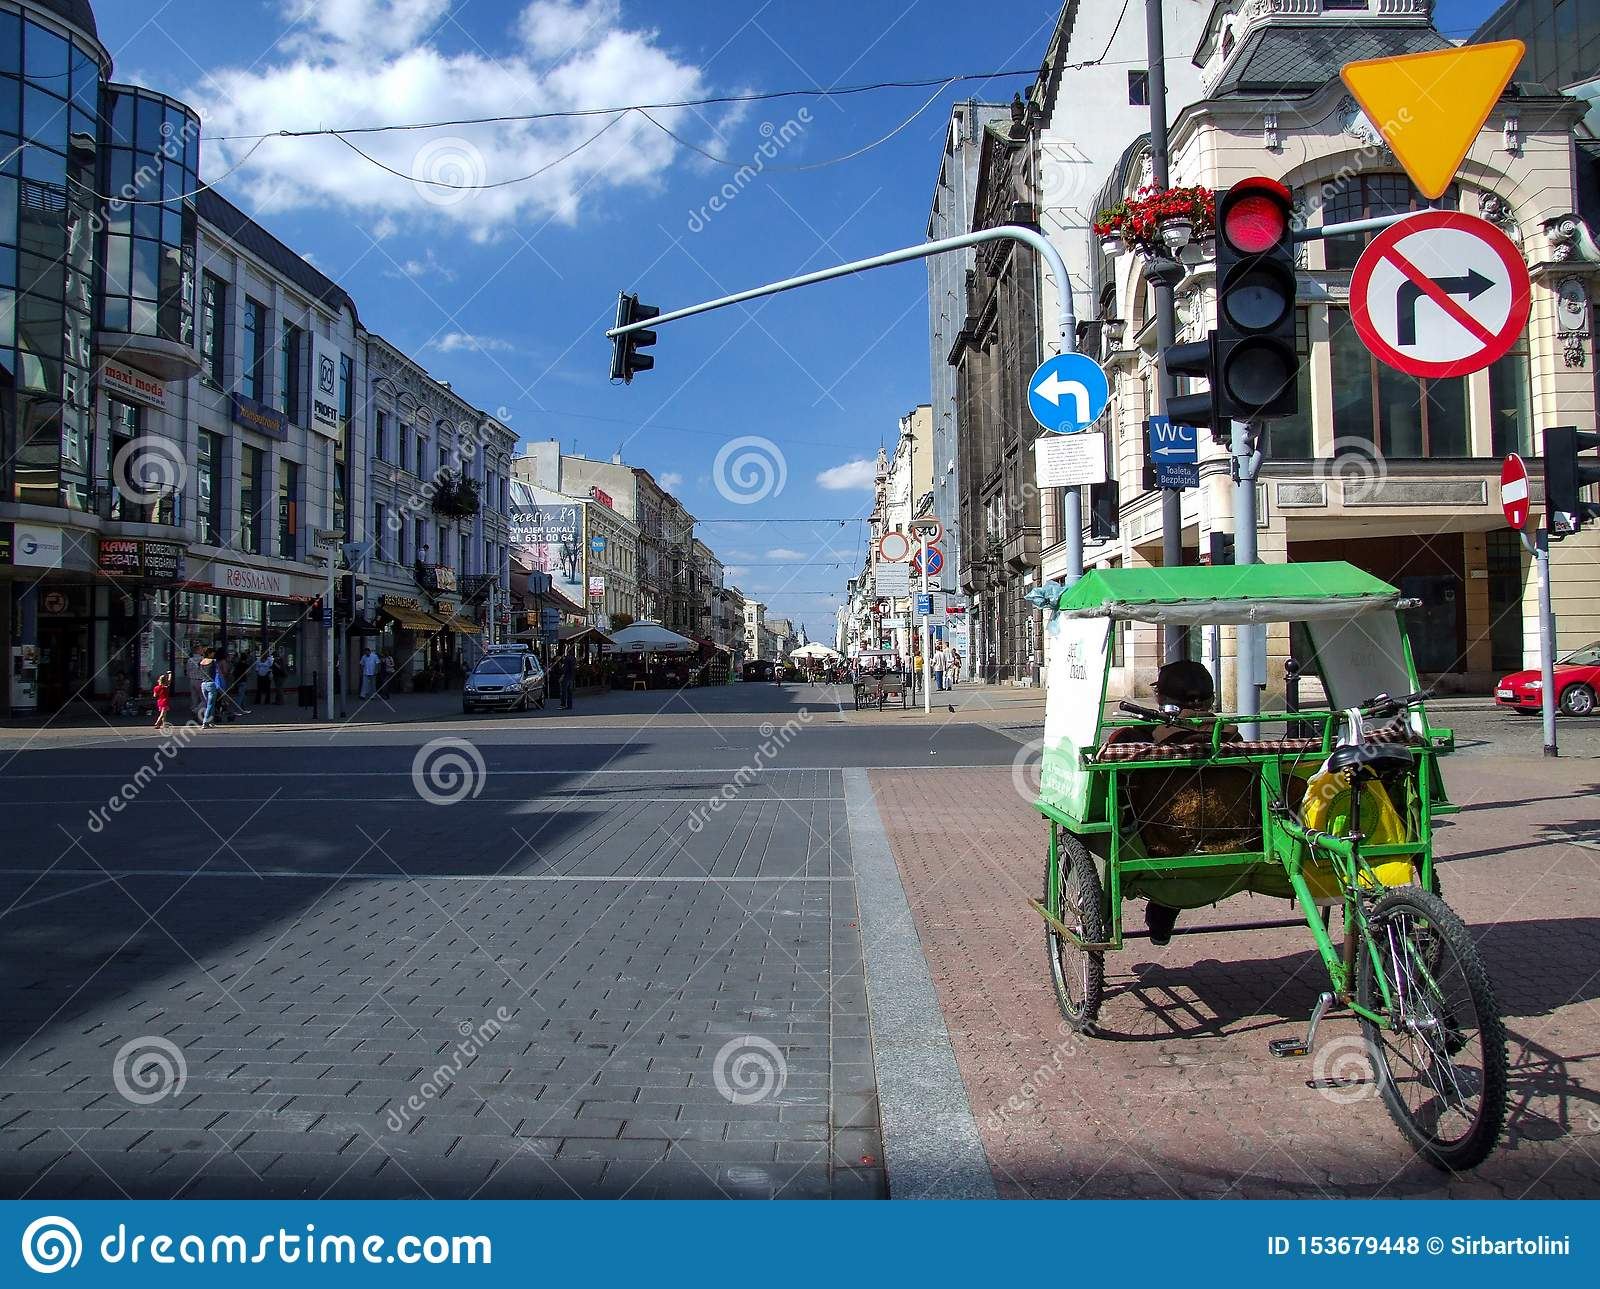 Rickshaw parked on crossroad of Piotrowska and Tuwima streets in Lodz in Poland.